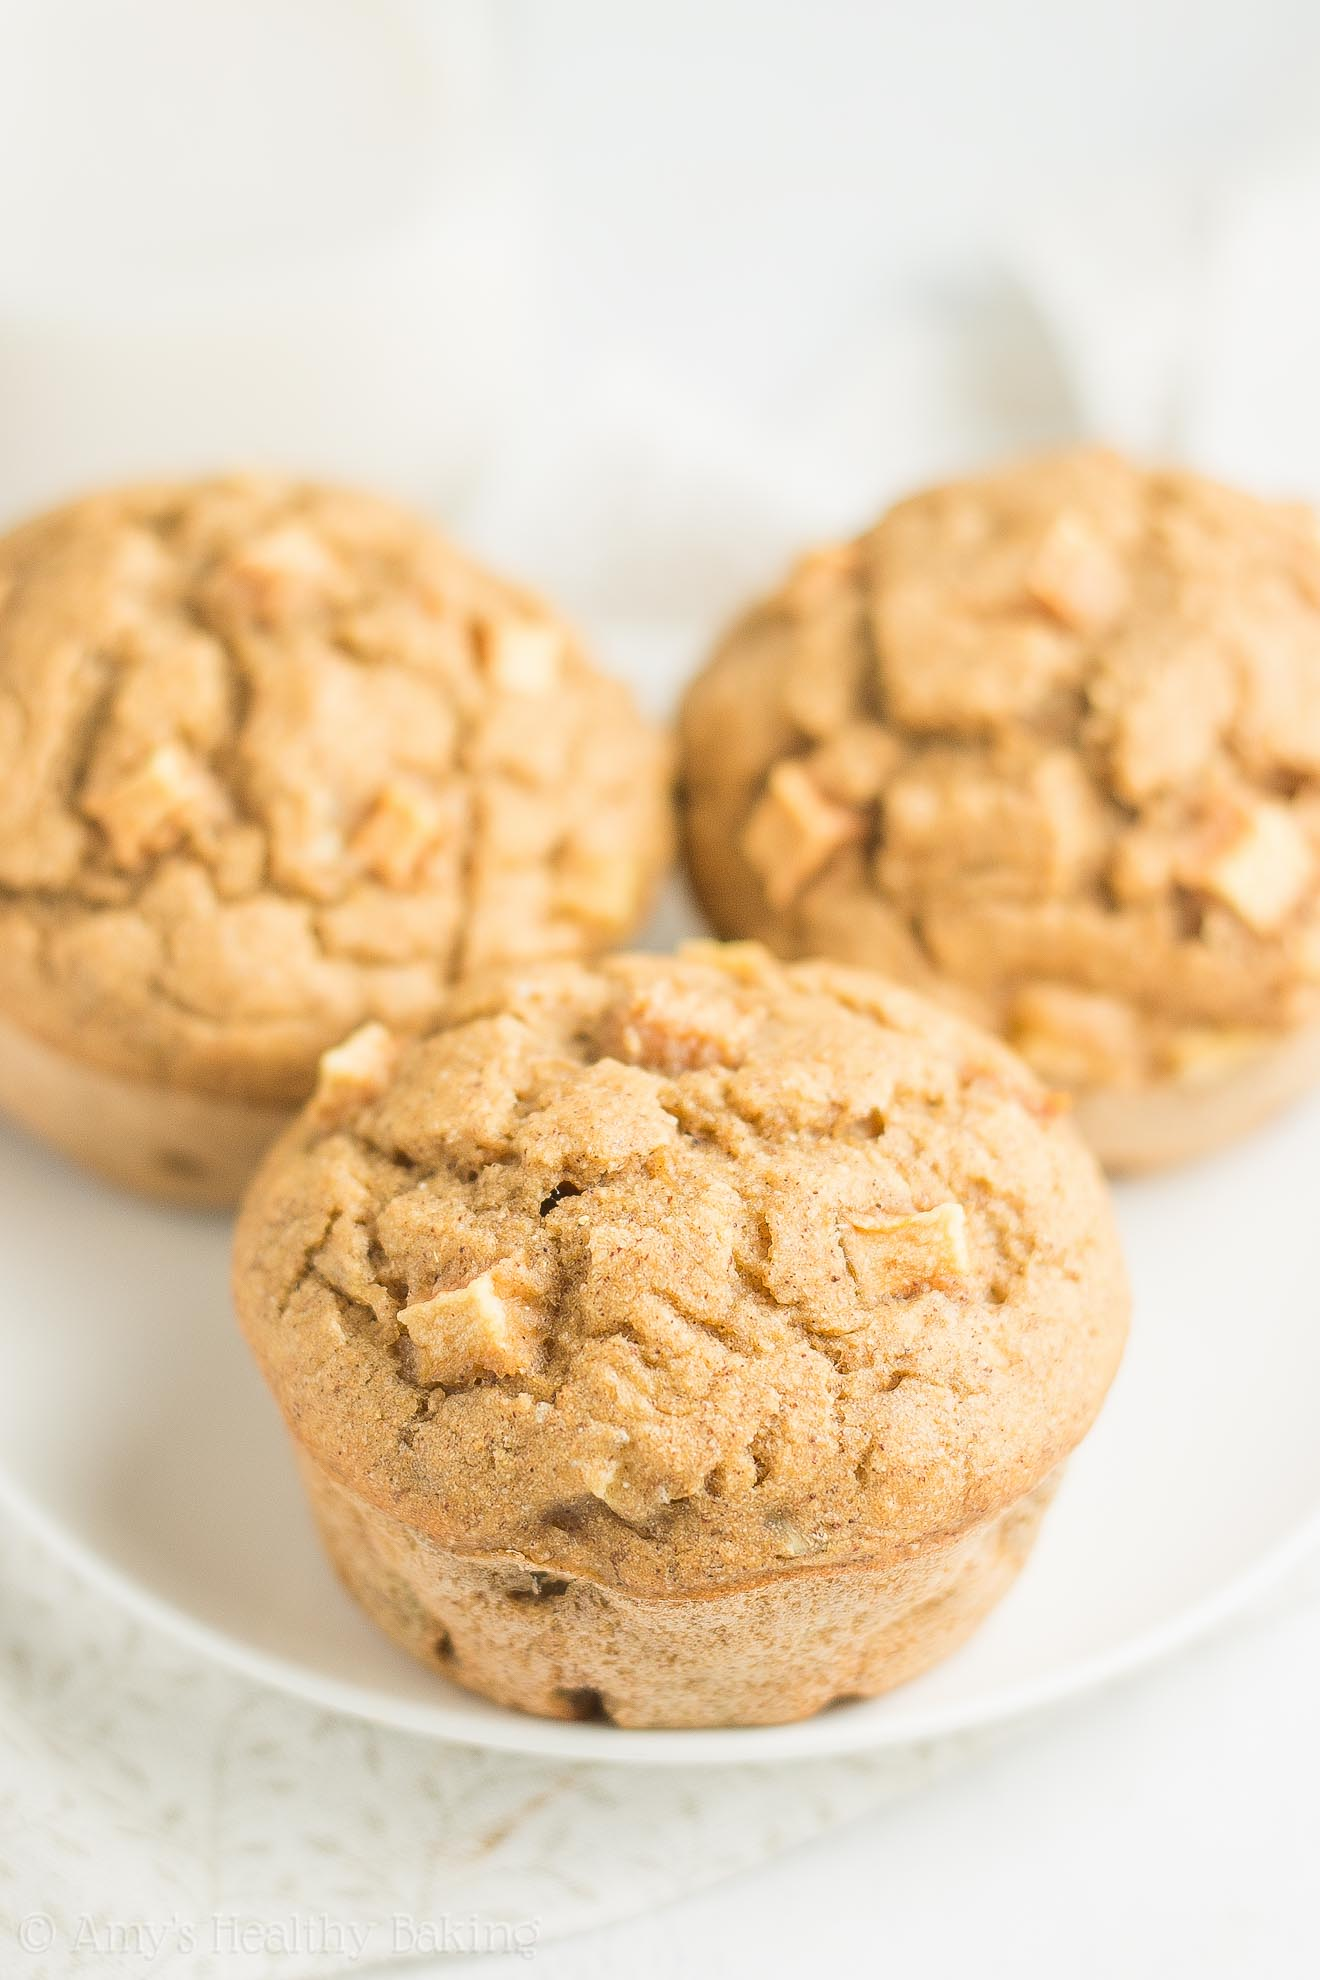 Healthy Gluten-Free Cinnamon Apple Banana Muffins